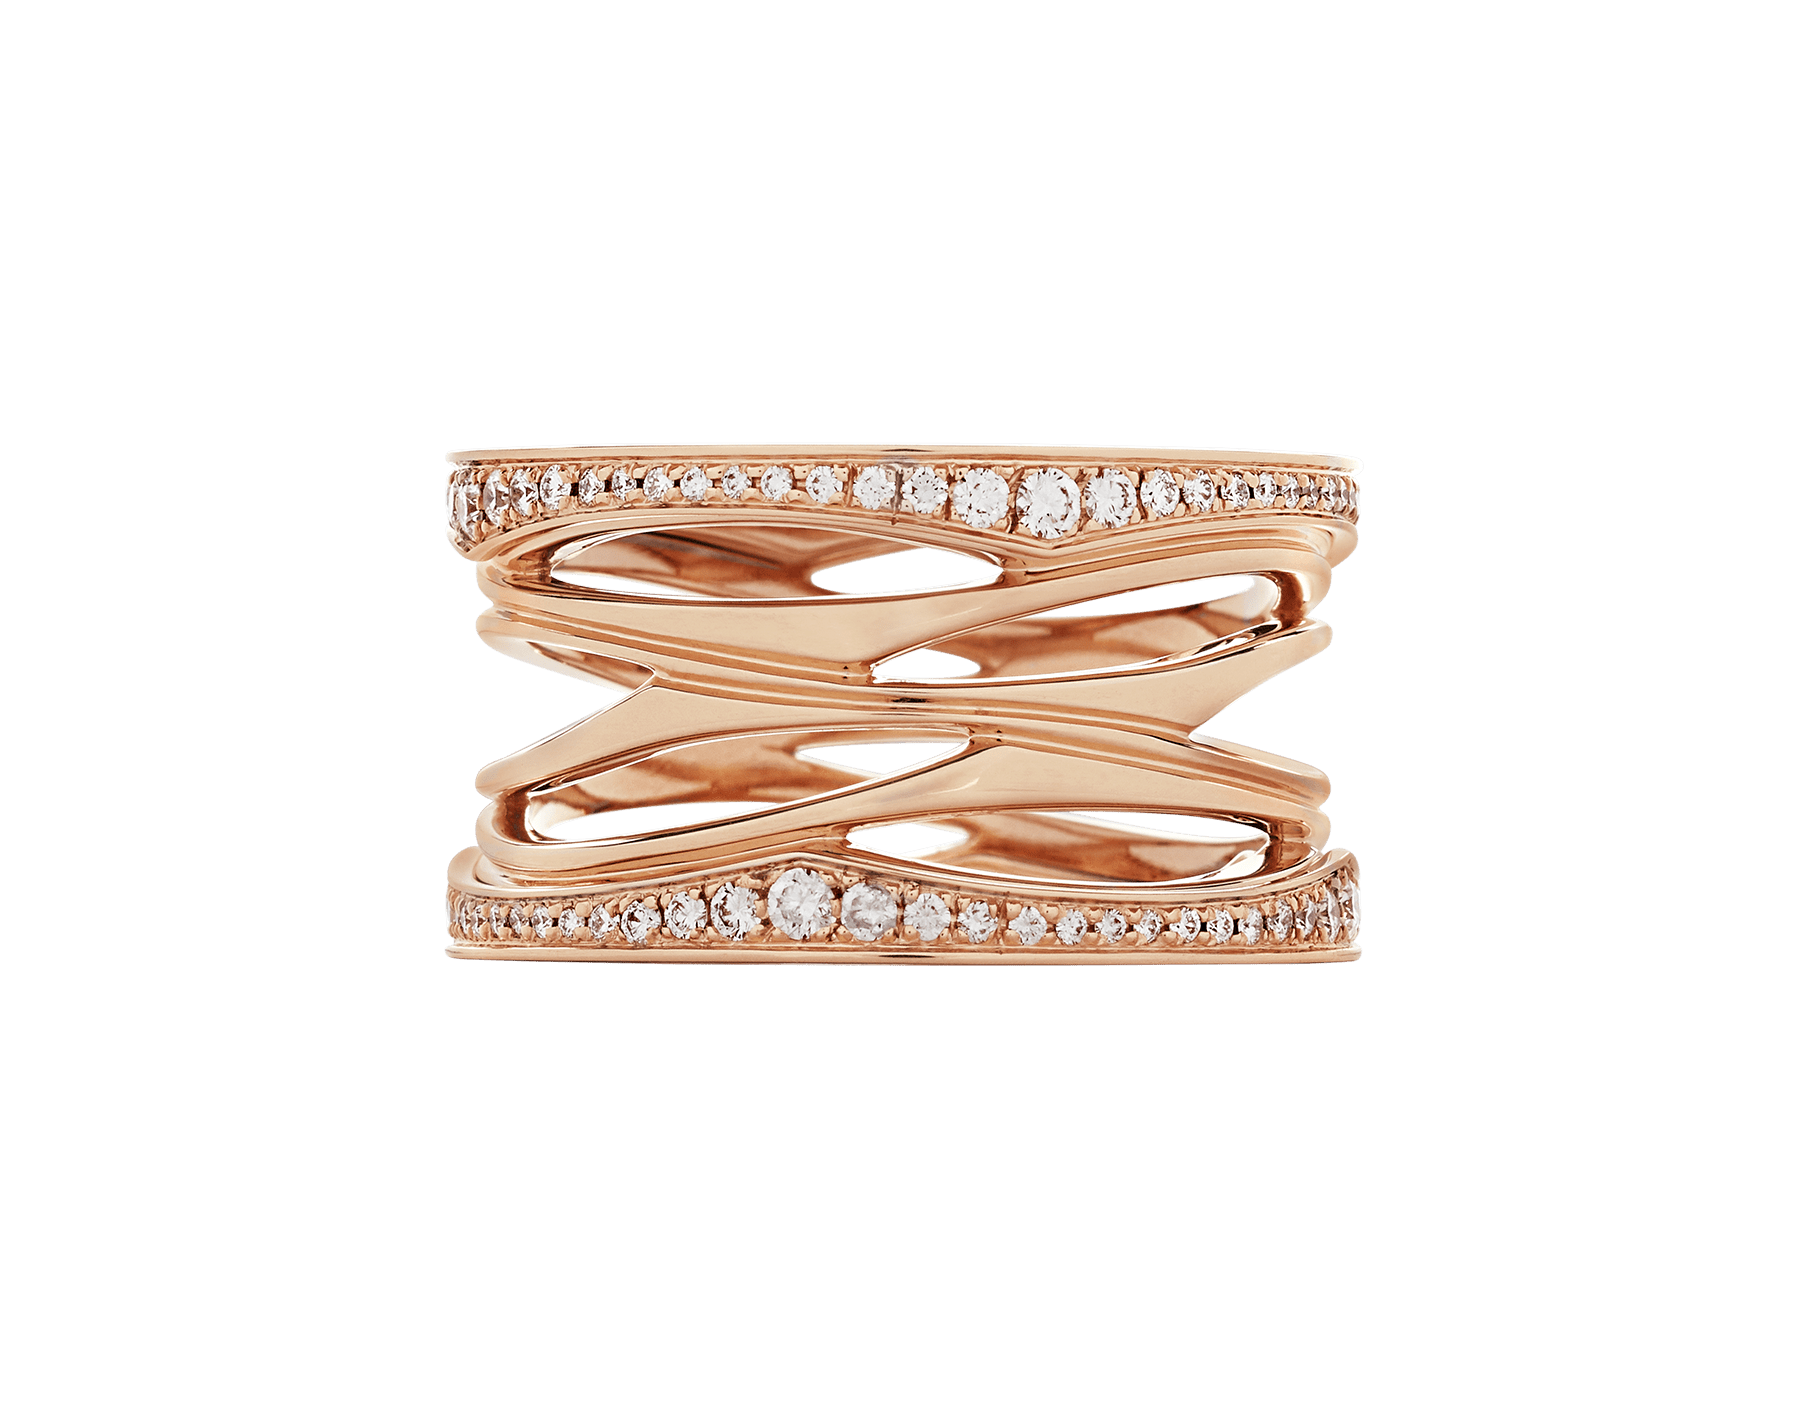 B.zero1 Design Legend four-band ring in 18 kt rose gold set with pavé diamonds (0.61 ct) on the edges. B-zero1-4-bands-AN858125 image 3